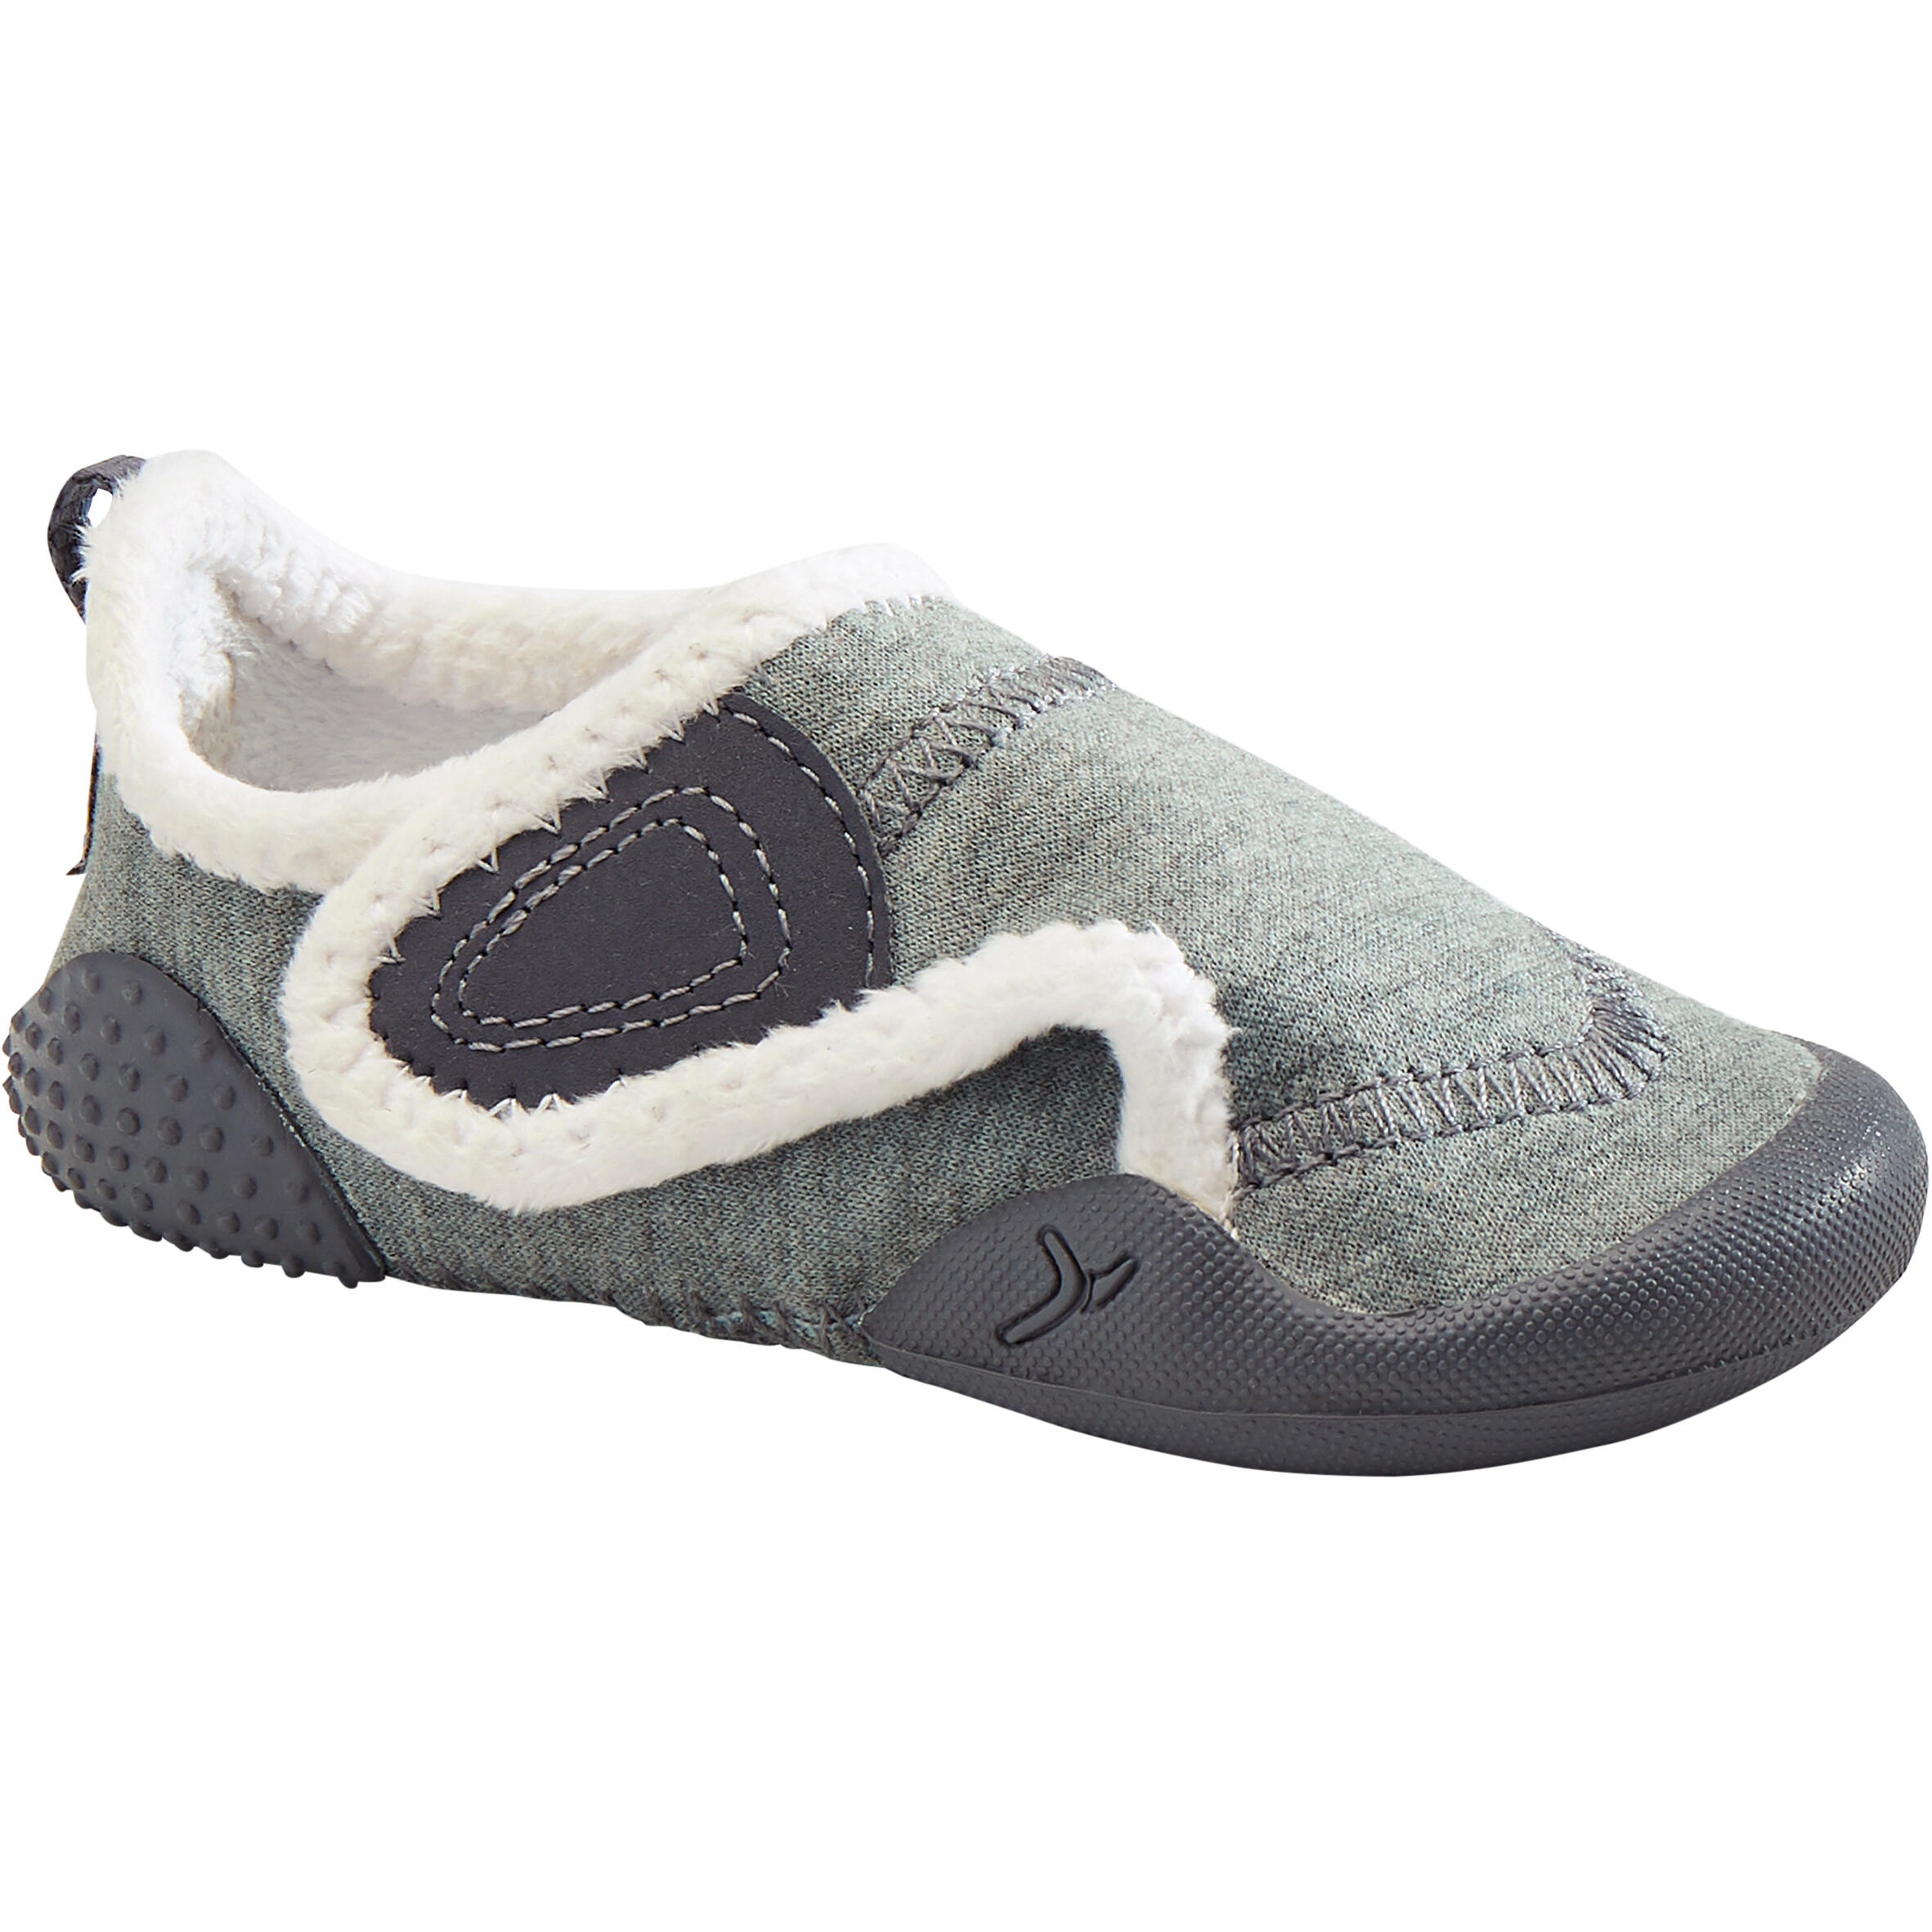 550 Baby Light Lined Booties - Grey